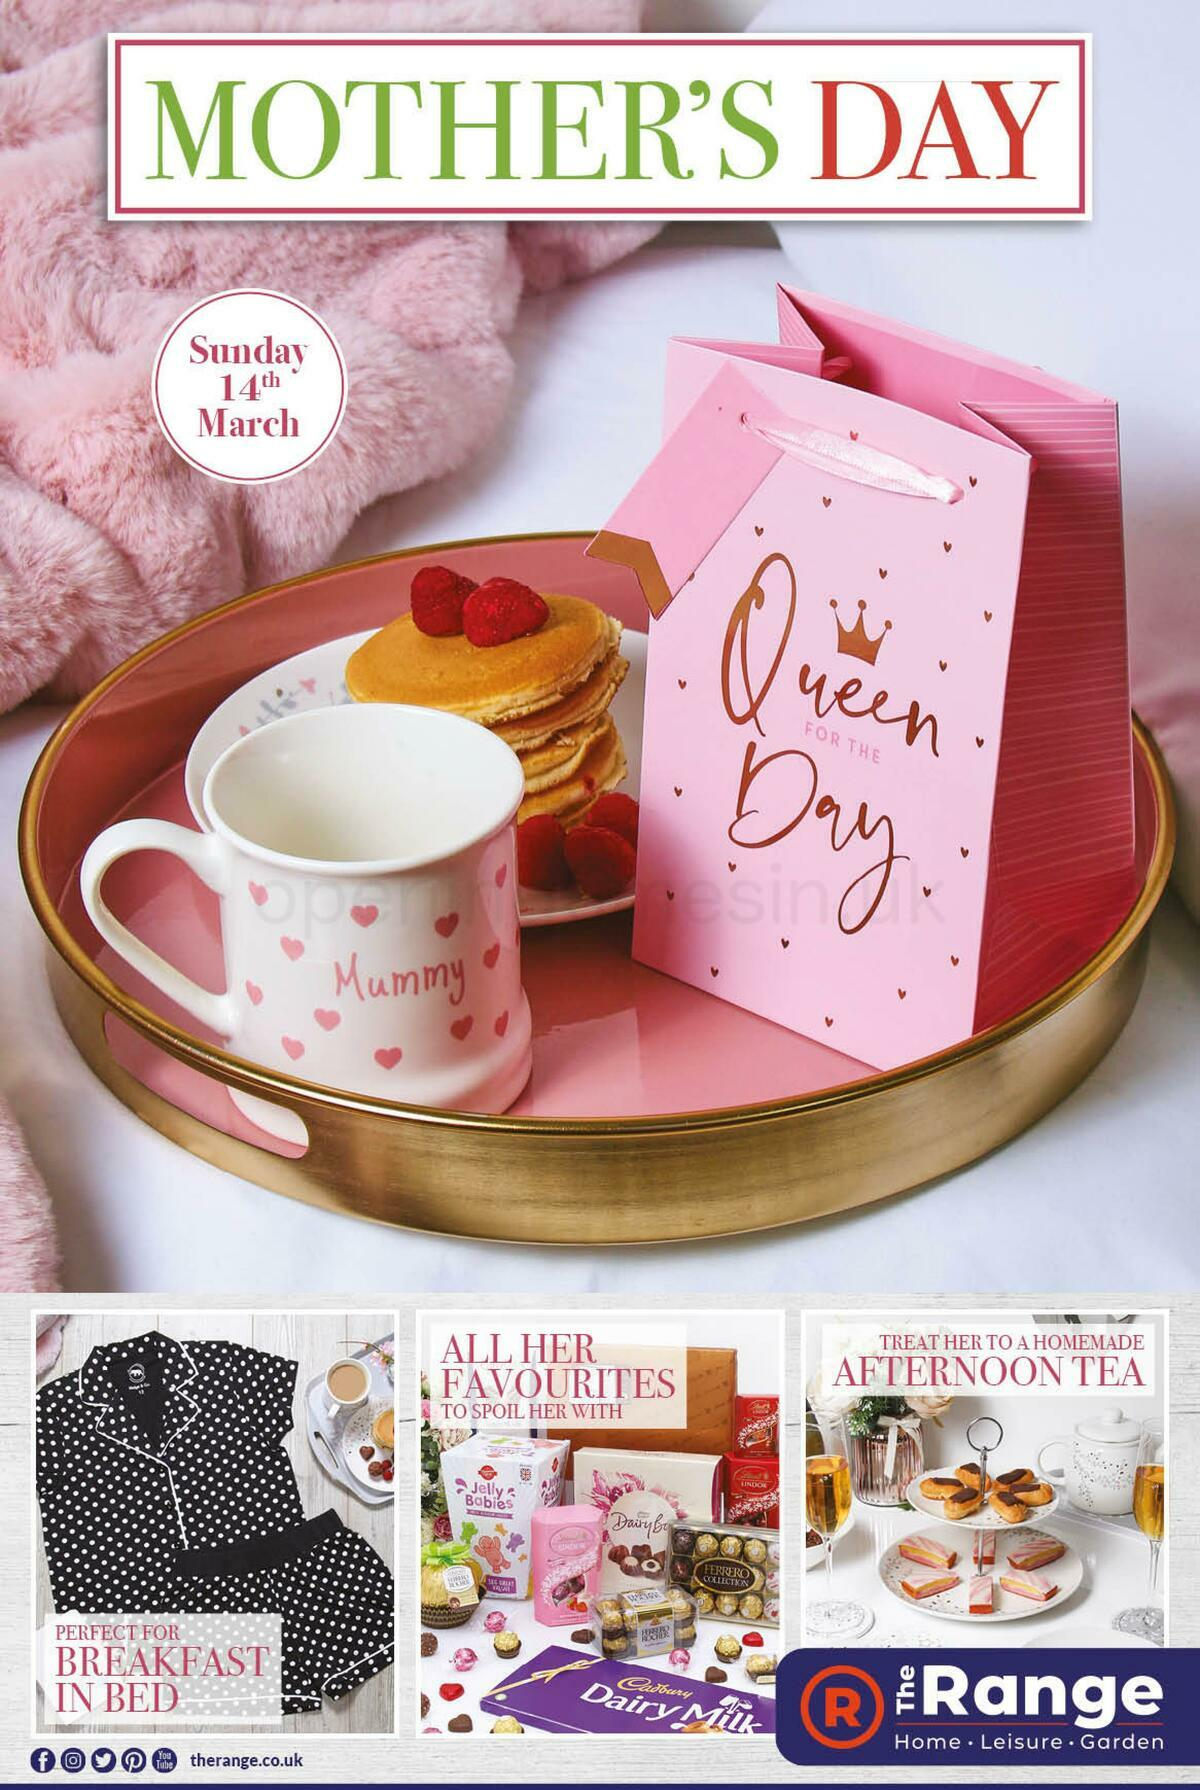 The Range Mother's Day Offers from February 25